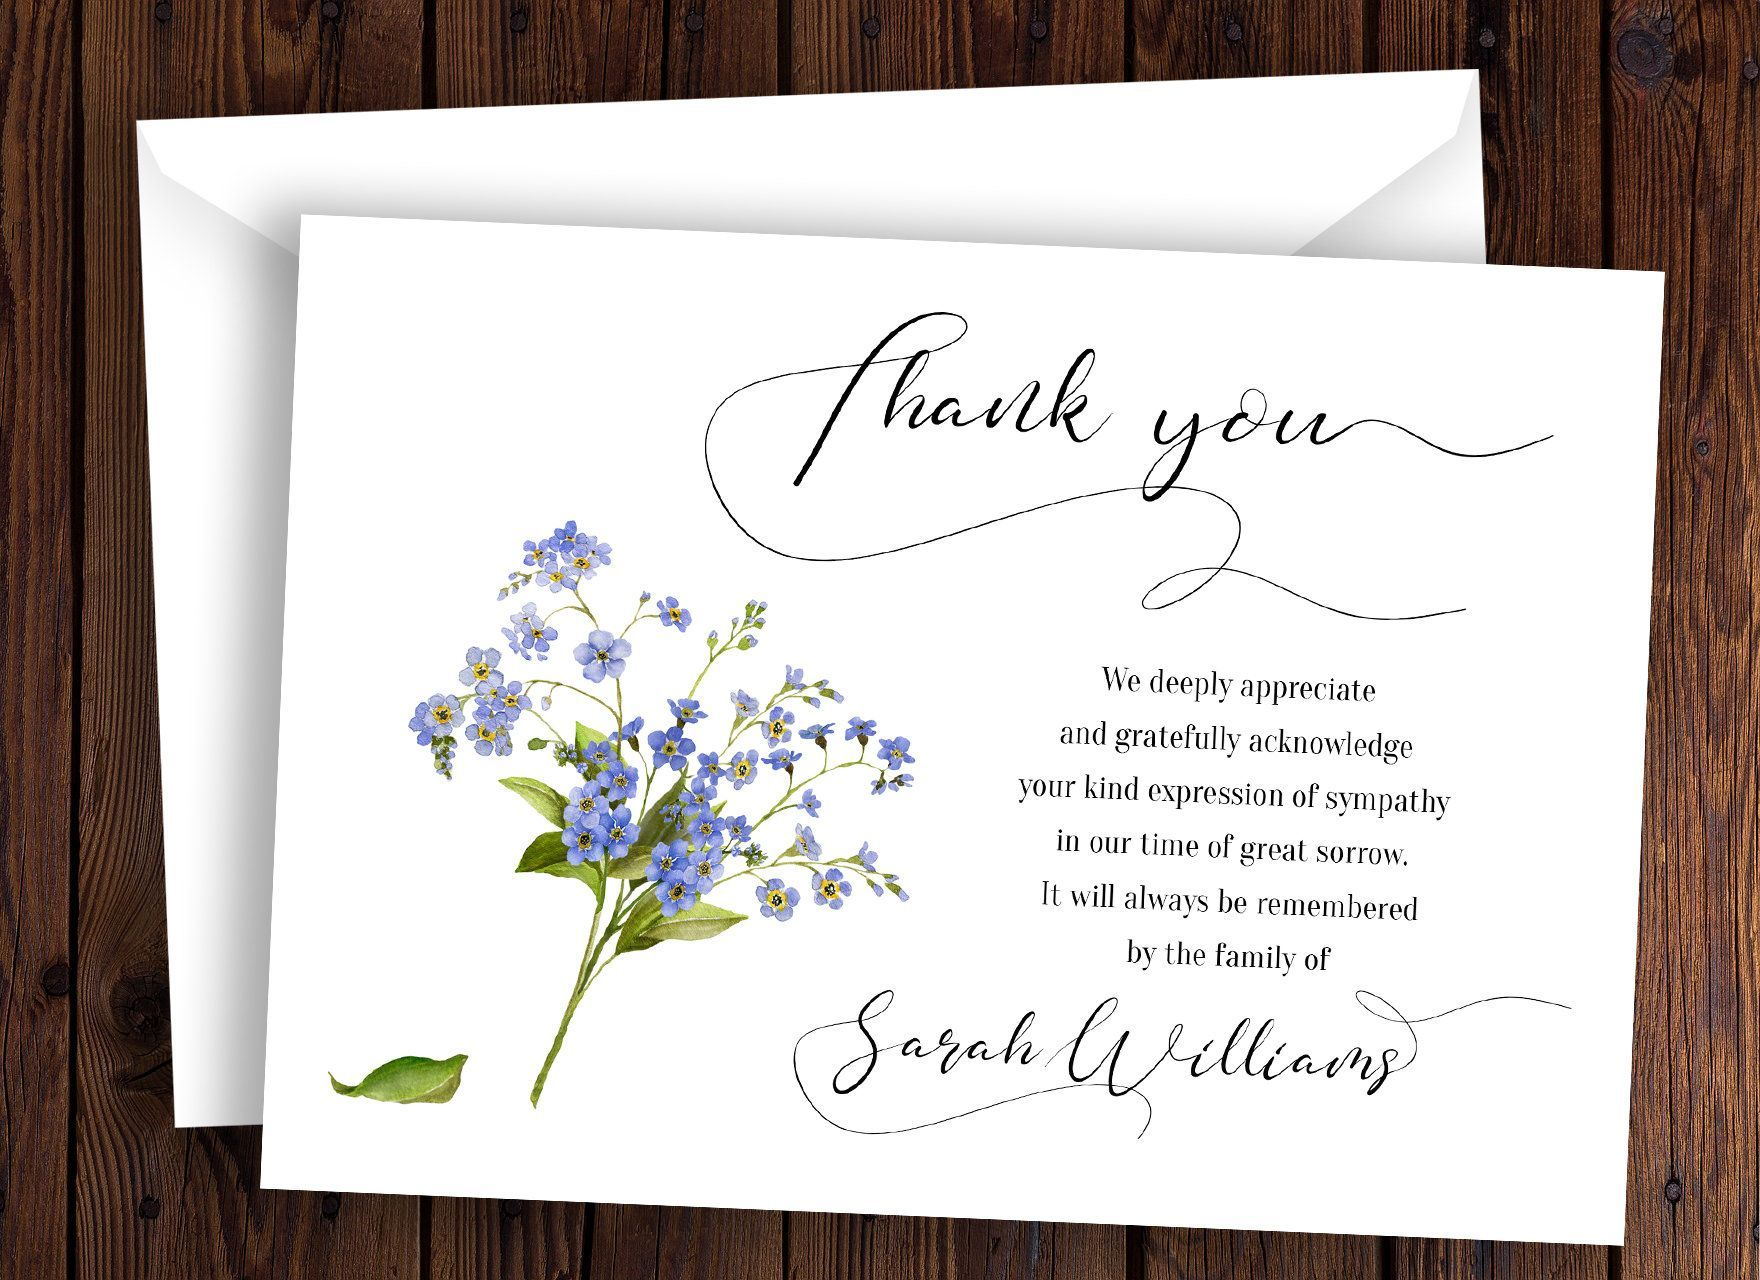 Personalized Funeral Thank You Card Sympathy Thank You Card For Sympathy Thank You Car Funeral Thank You Cards Sympathy Thank You Cards Funeral Thank You Notes